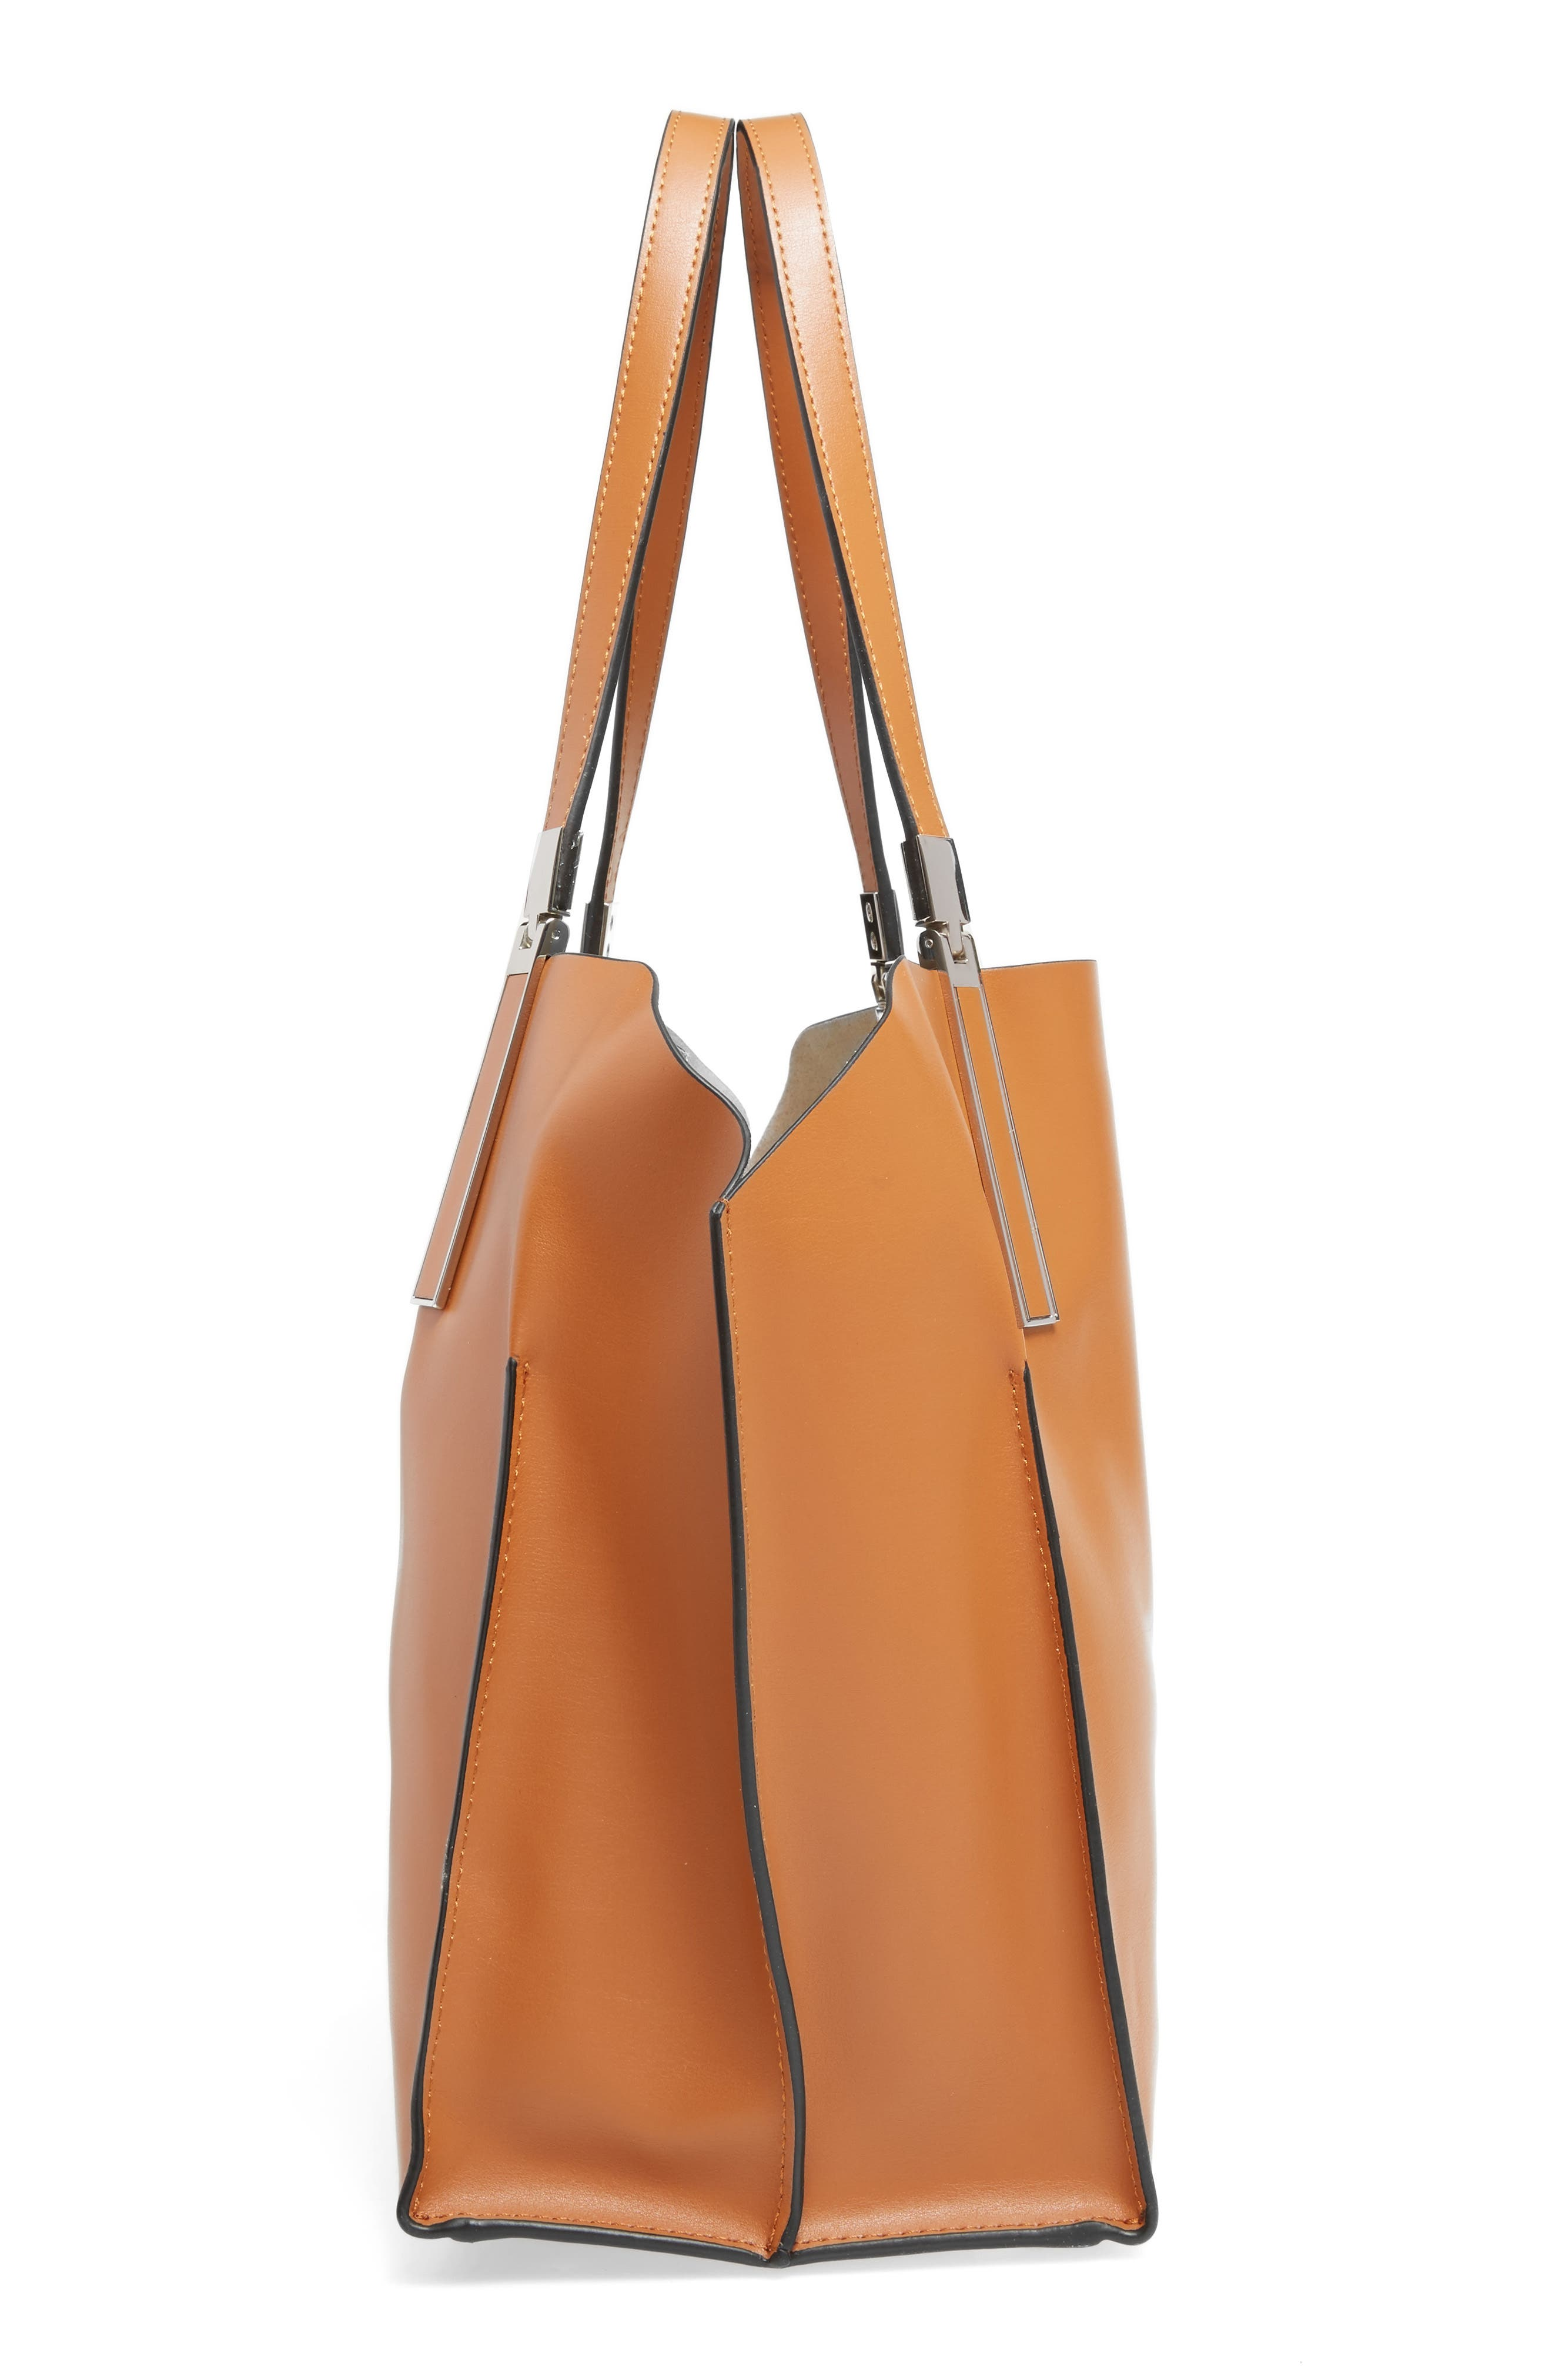 LODIS Silicon Valley Collection Under Lock & Key - Anita RFID East/West Leather Satchel,                             Alternate thumbnail 14, color,